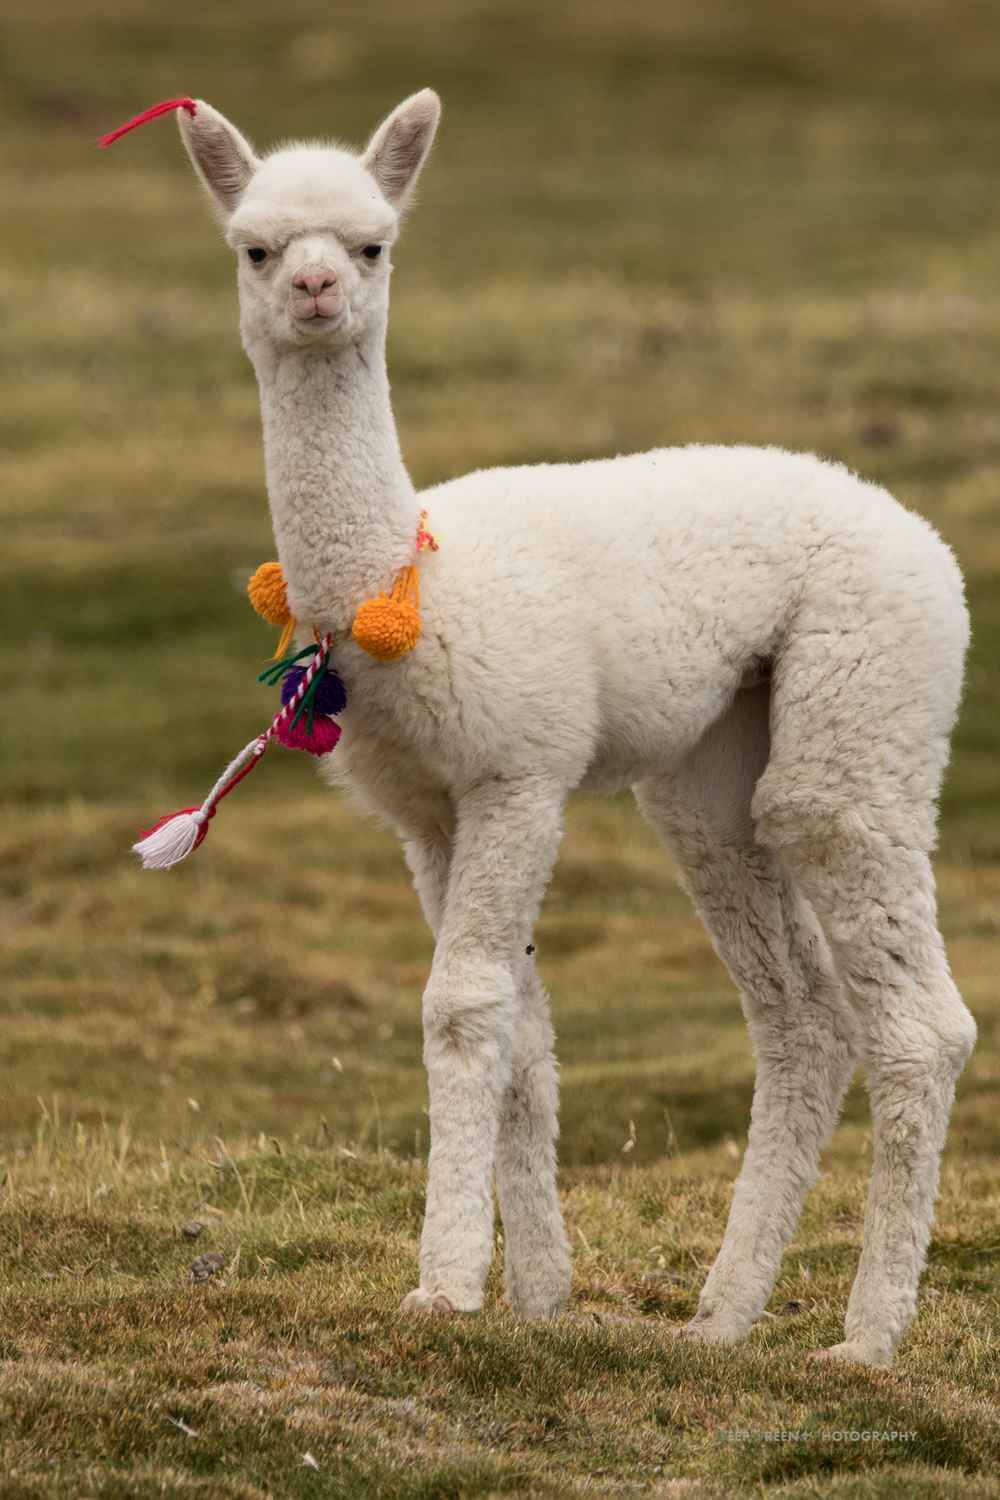 A baby llama in a pasture near an indigenous town in the Chilean altiplano